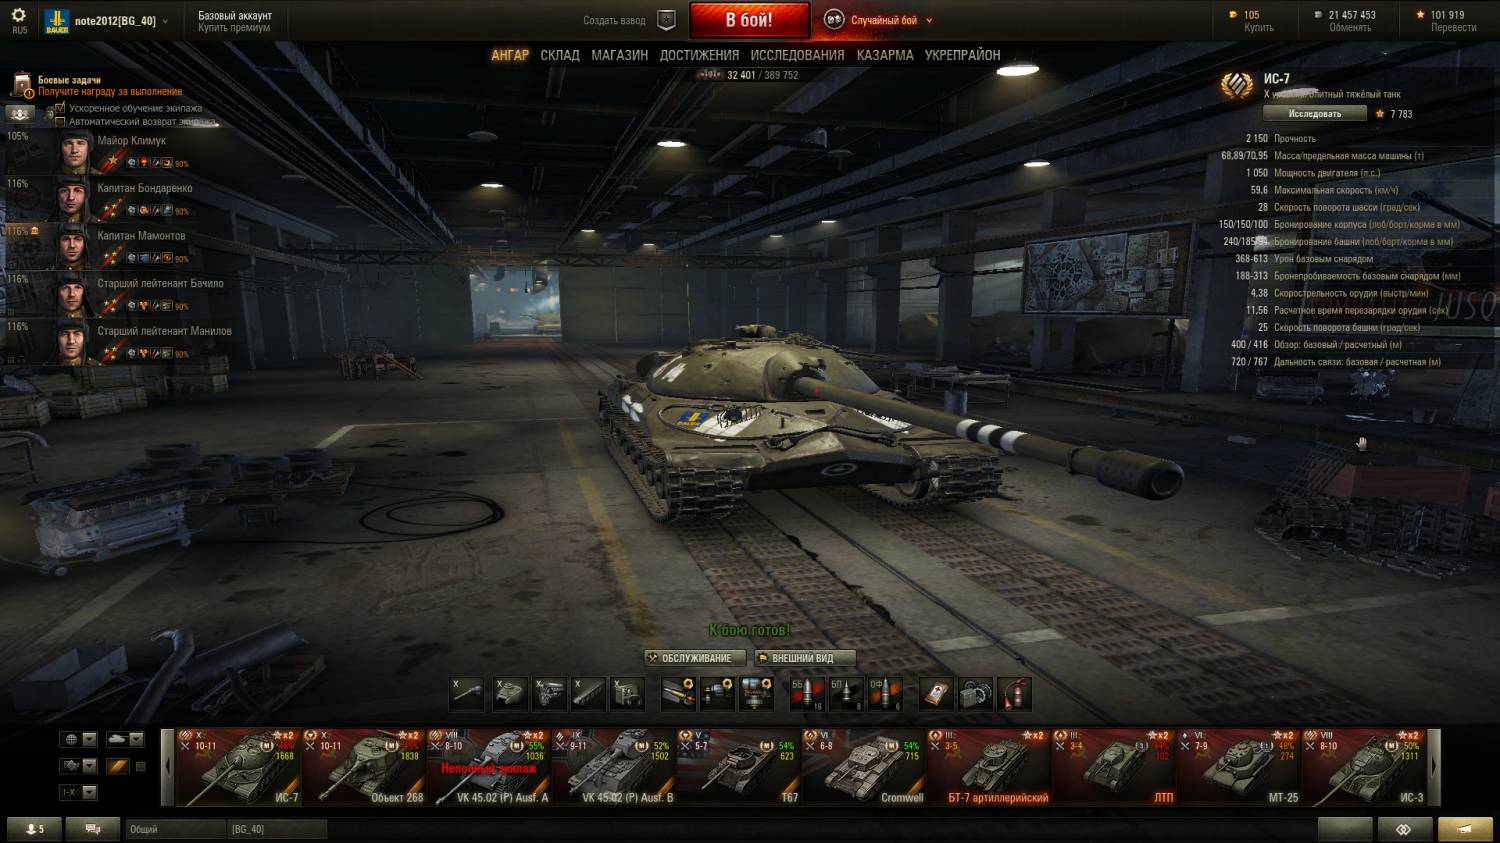 Steelseries world of tanks qck